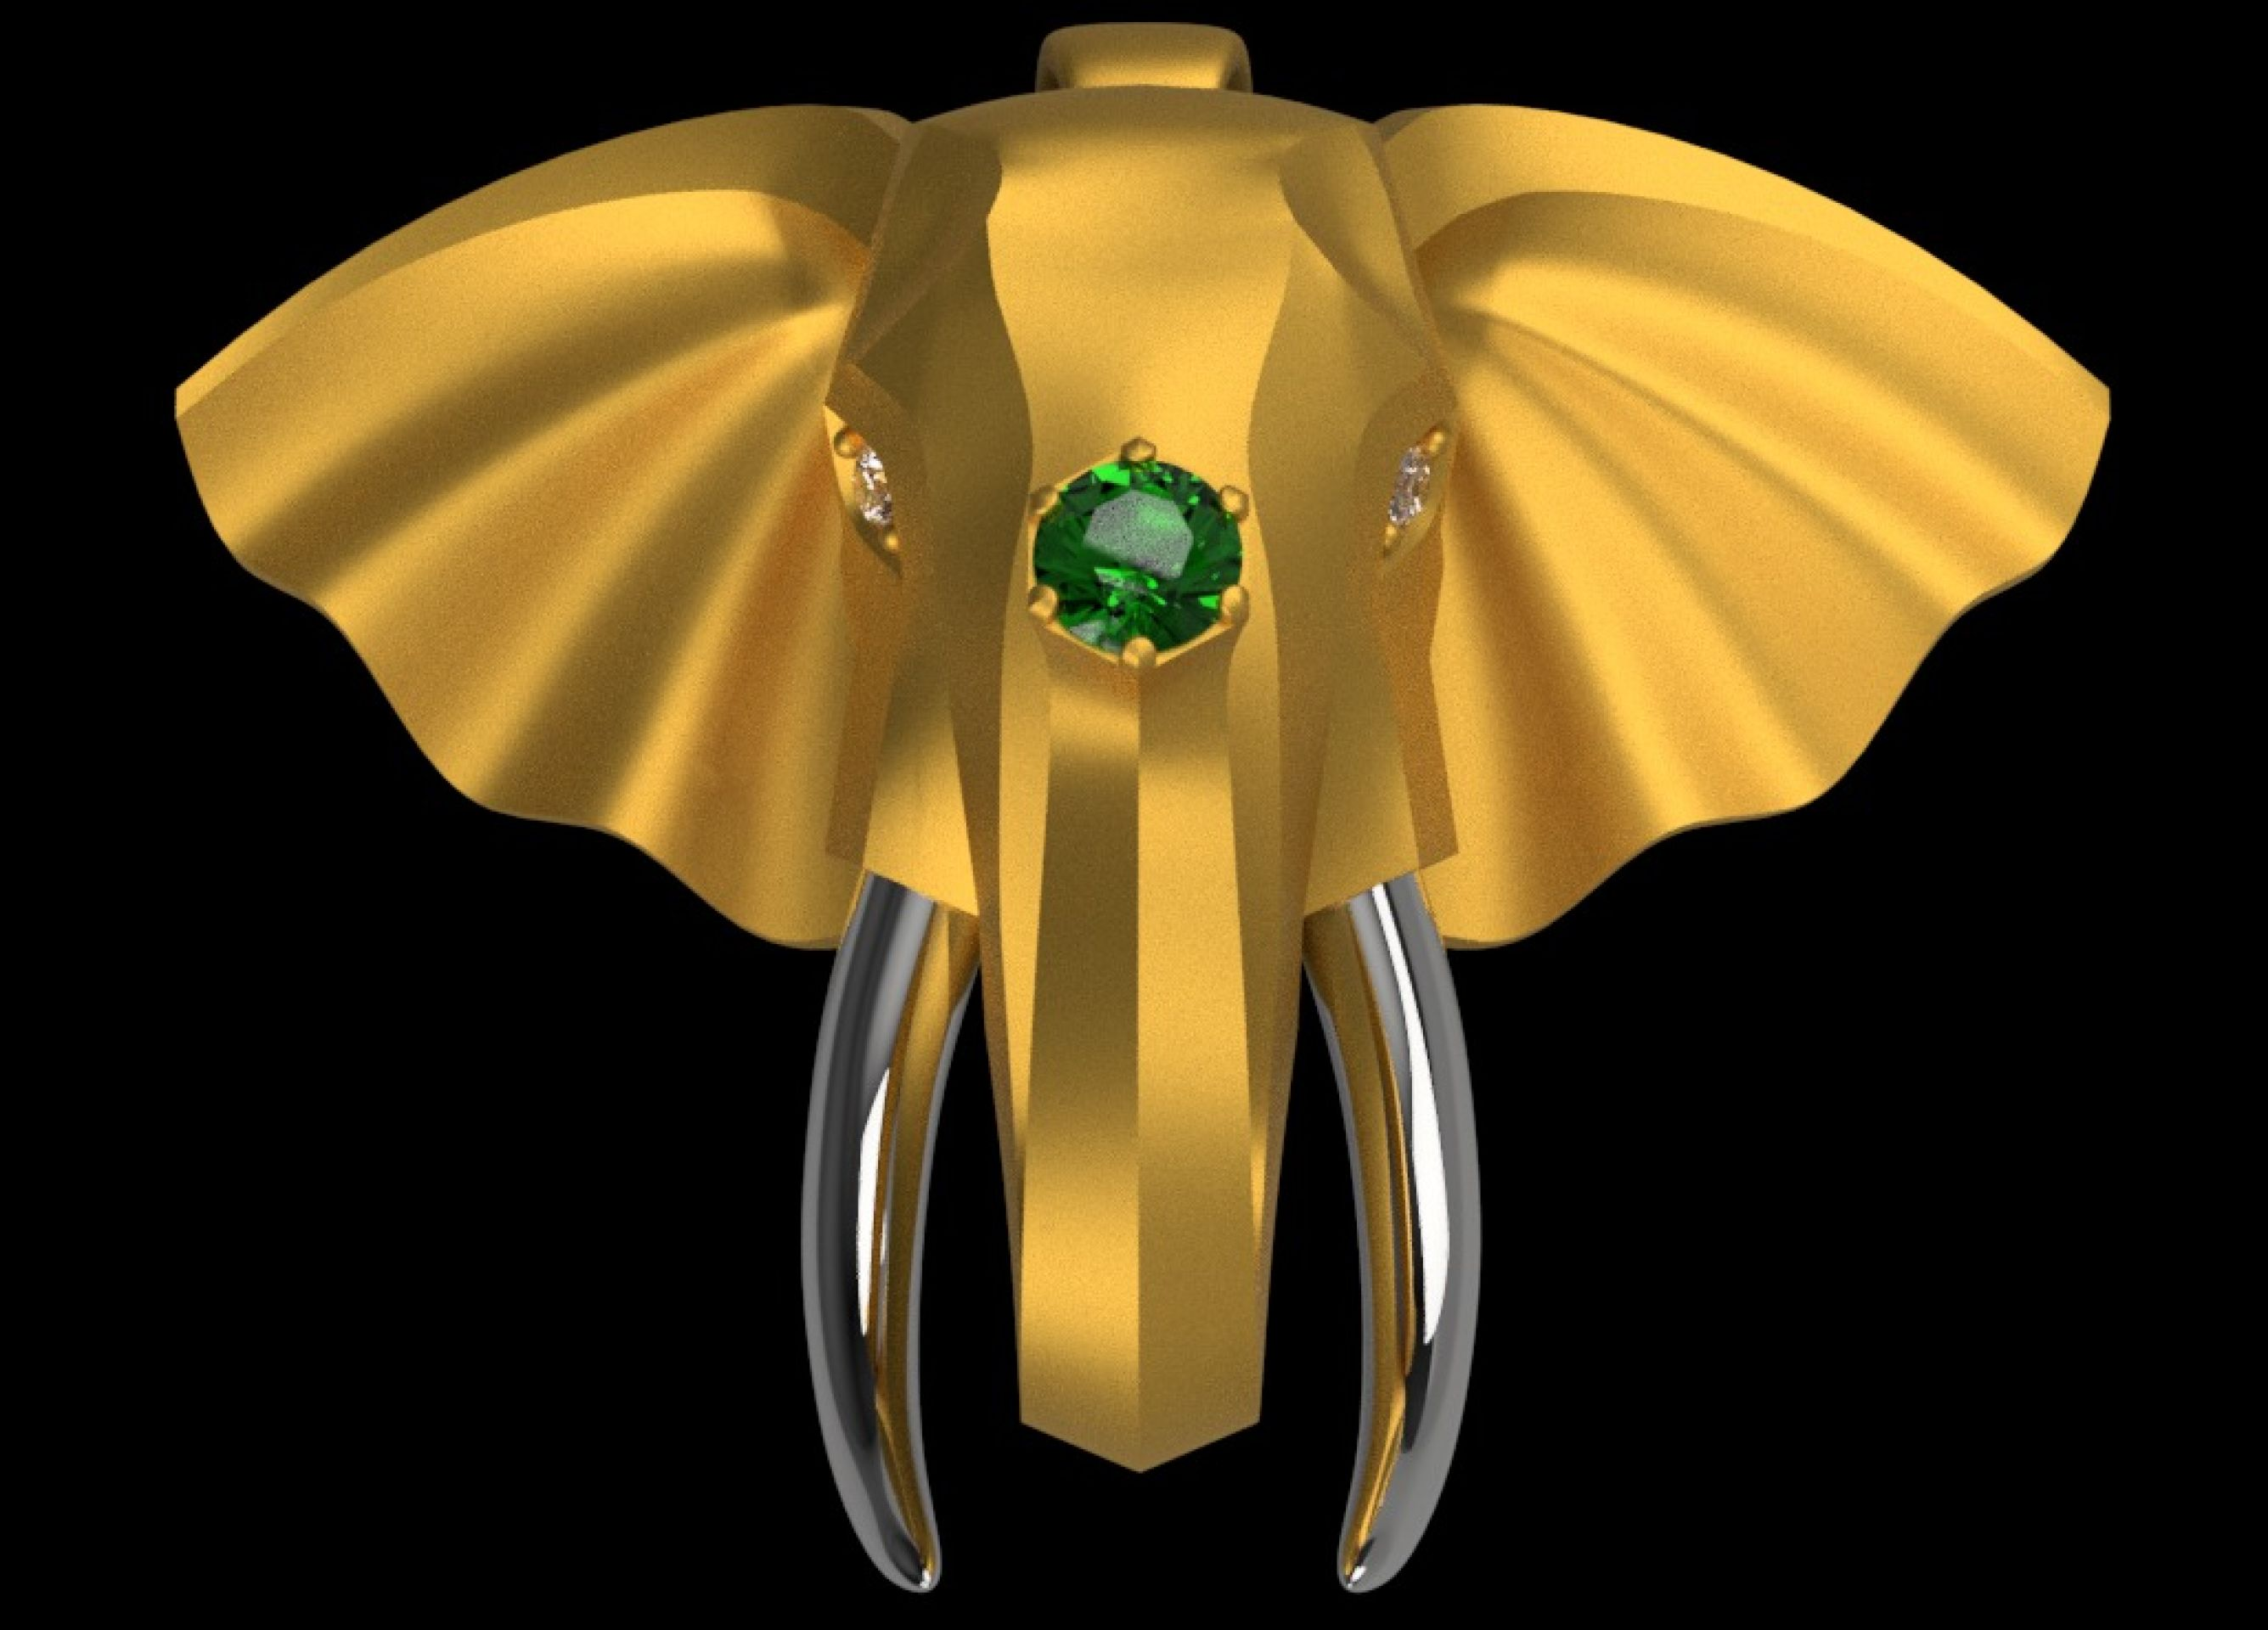 Elephant Head Pendant or Pin/Brooch - 24K Gold & .9999 Platinum